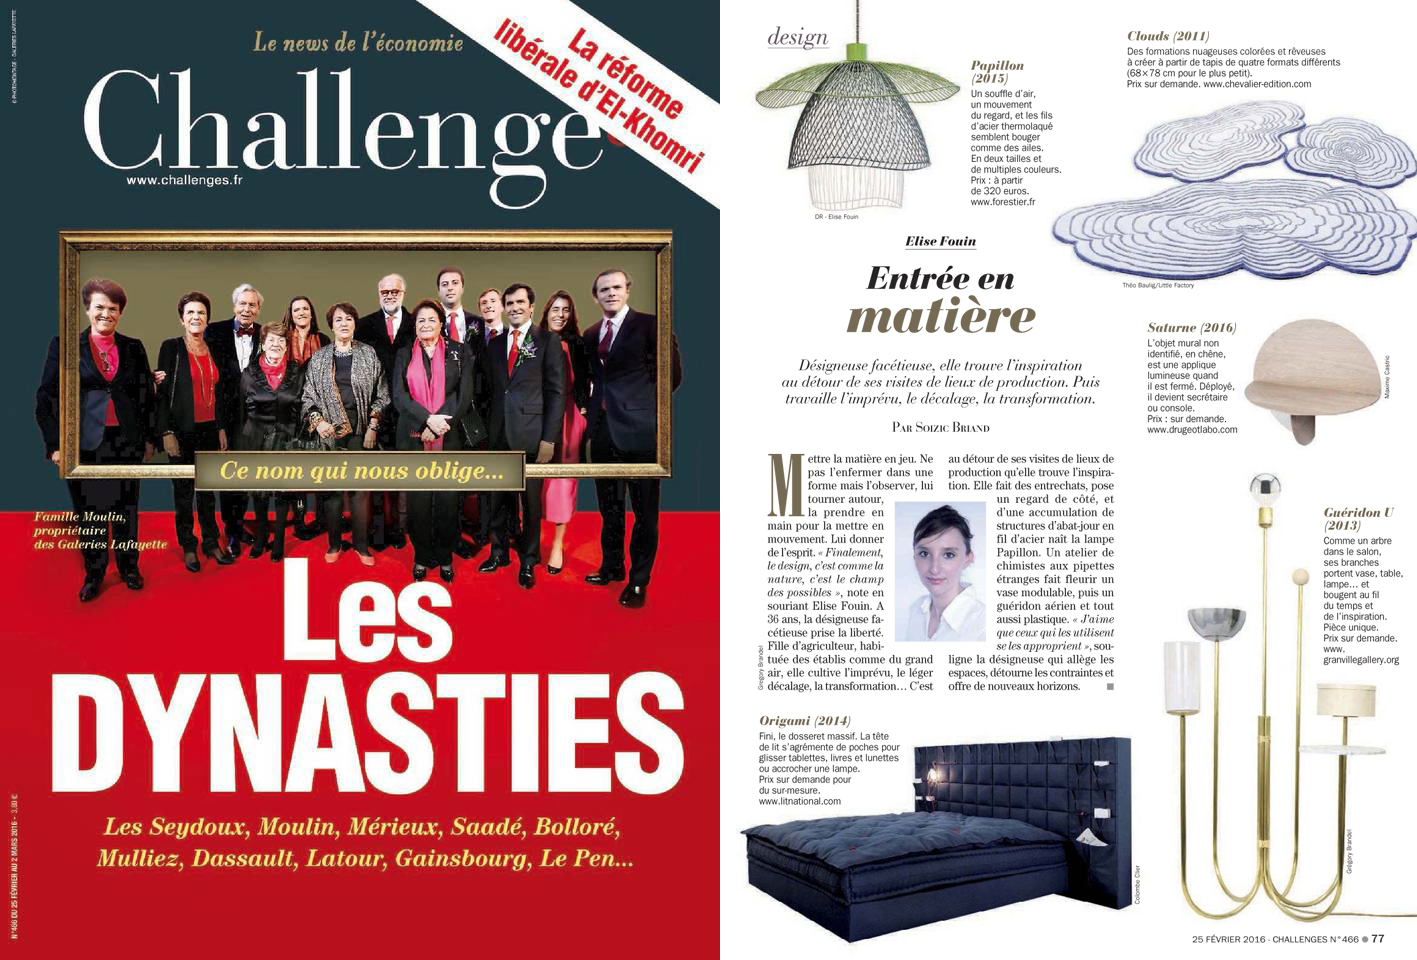 challenges 25 fevreir 2016